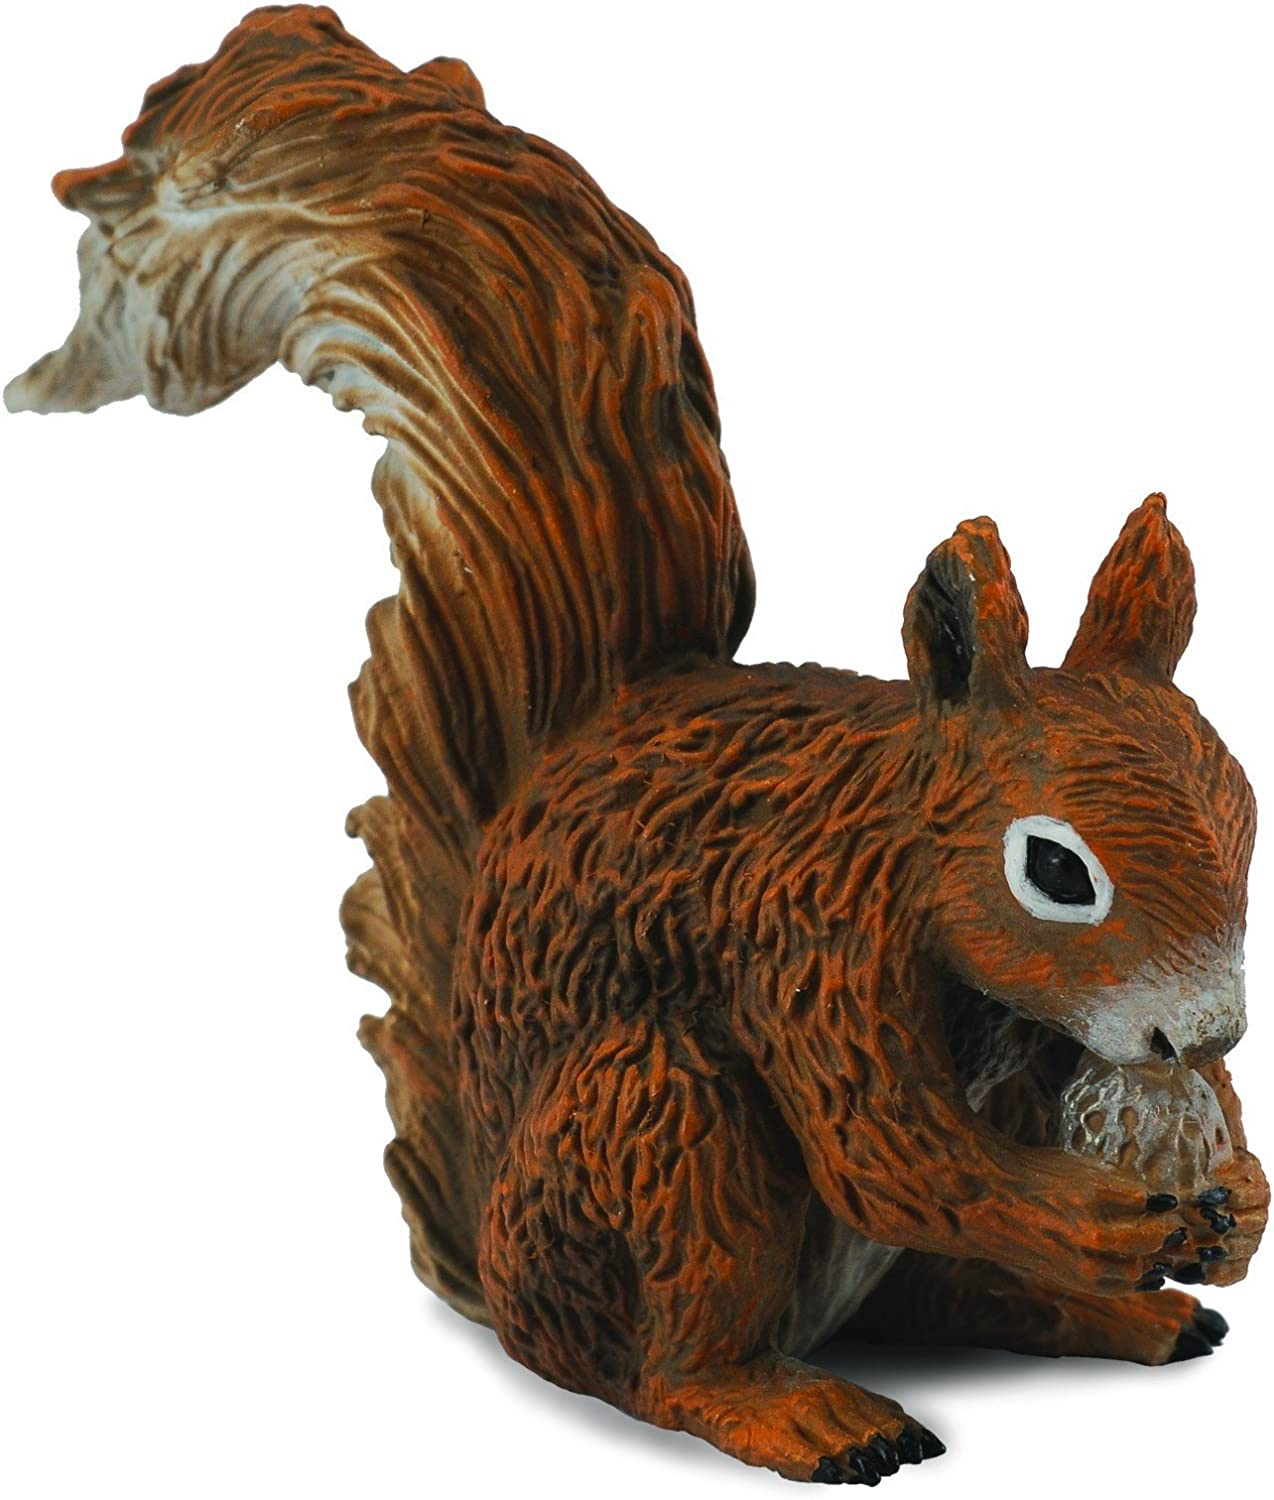 CollectA Woodlands Red Squirrel (Eating) Miniature Toy Figure - Authentic Hand Painted Model